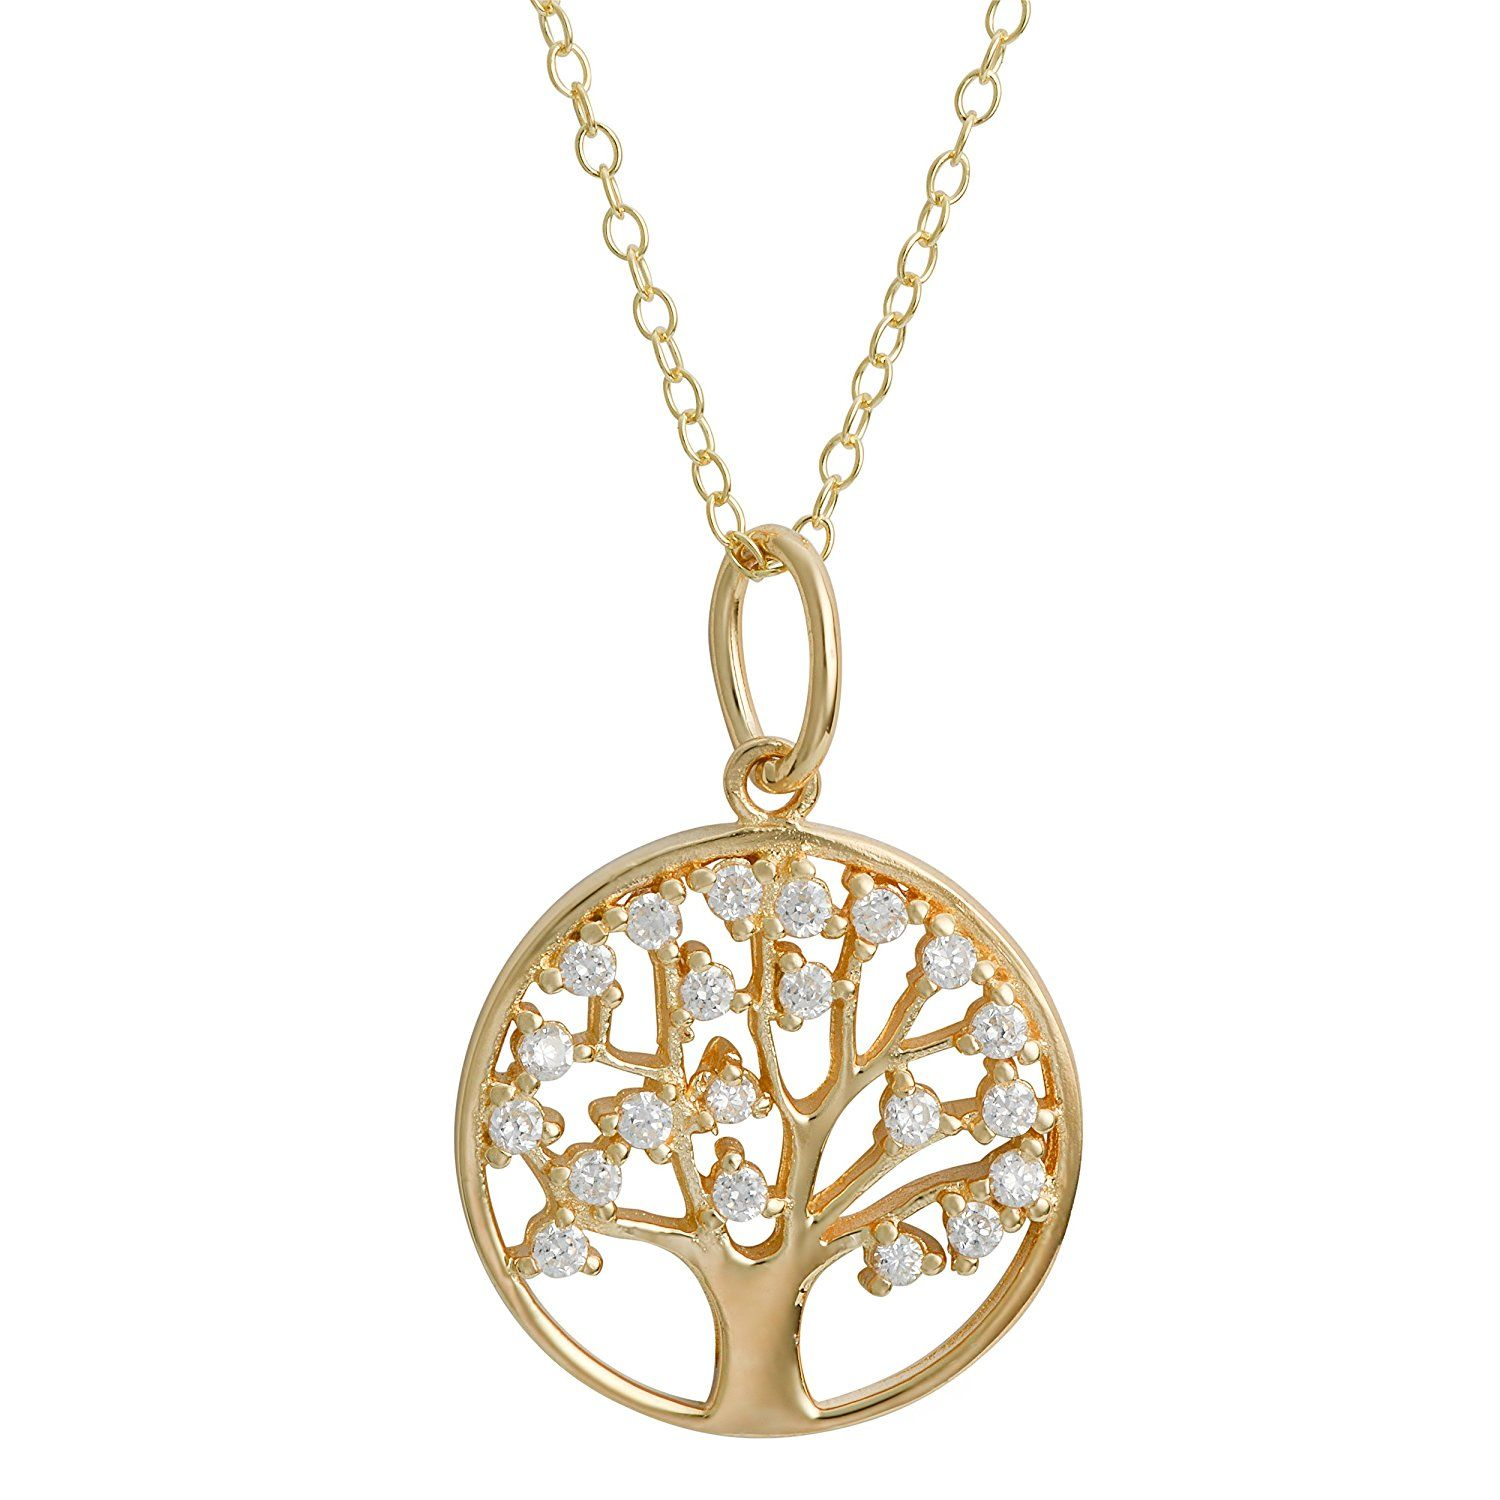 852bffa93f2a8 Yellow Gold Over Sterling Silver Cubic Zirconia Tree Of Life Pendant ...